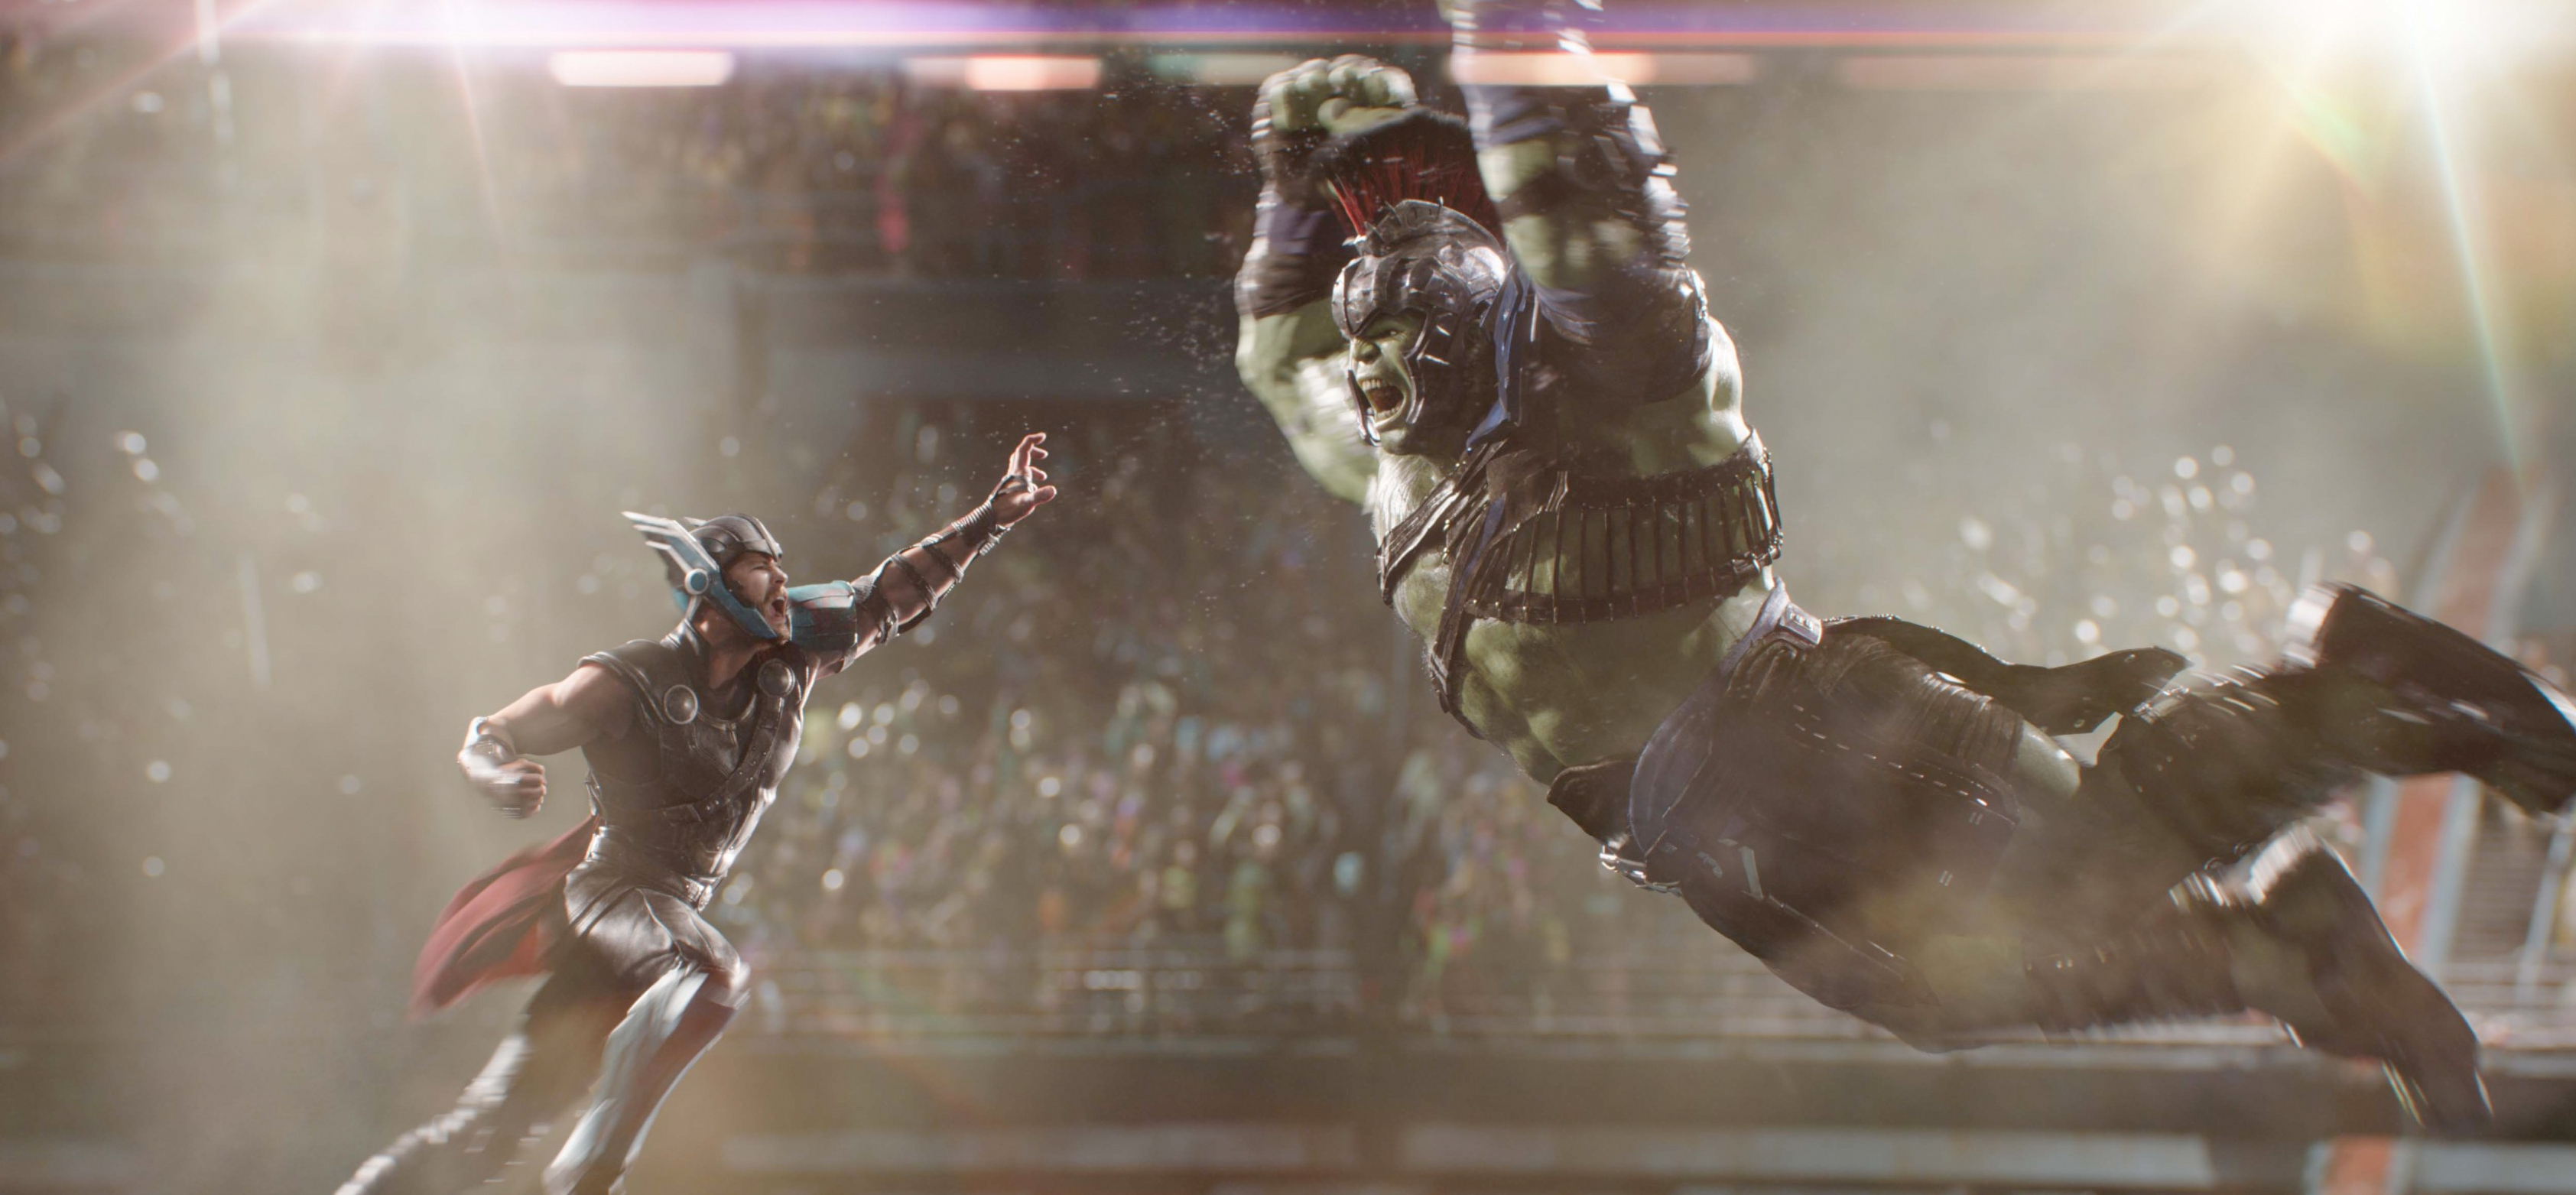 Wallpapers Hd Hulk Watch The Thor Vs Hulk Scene From Thor Ragnarok